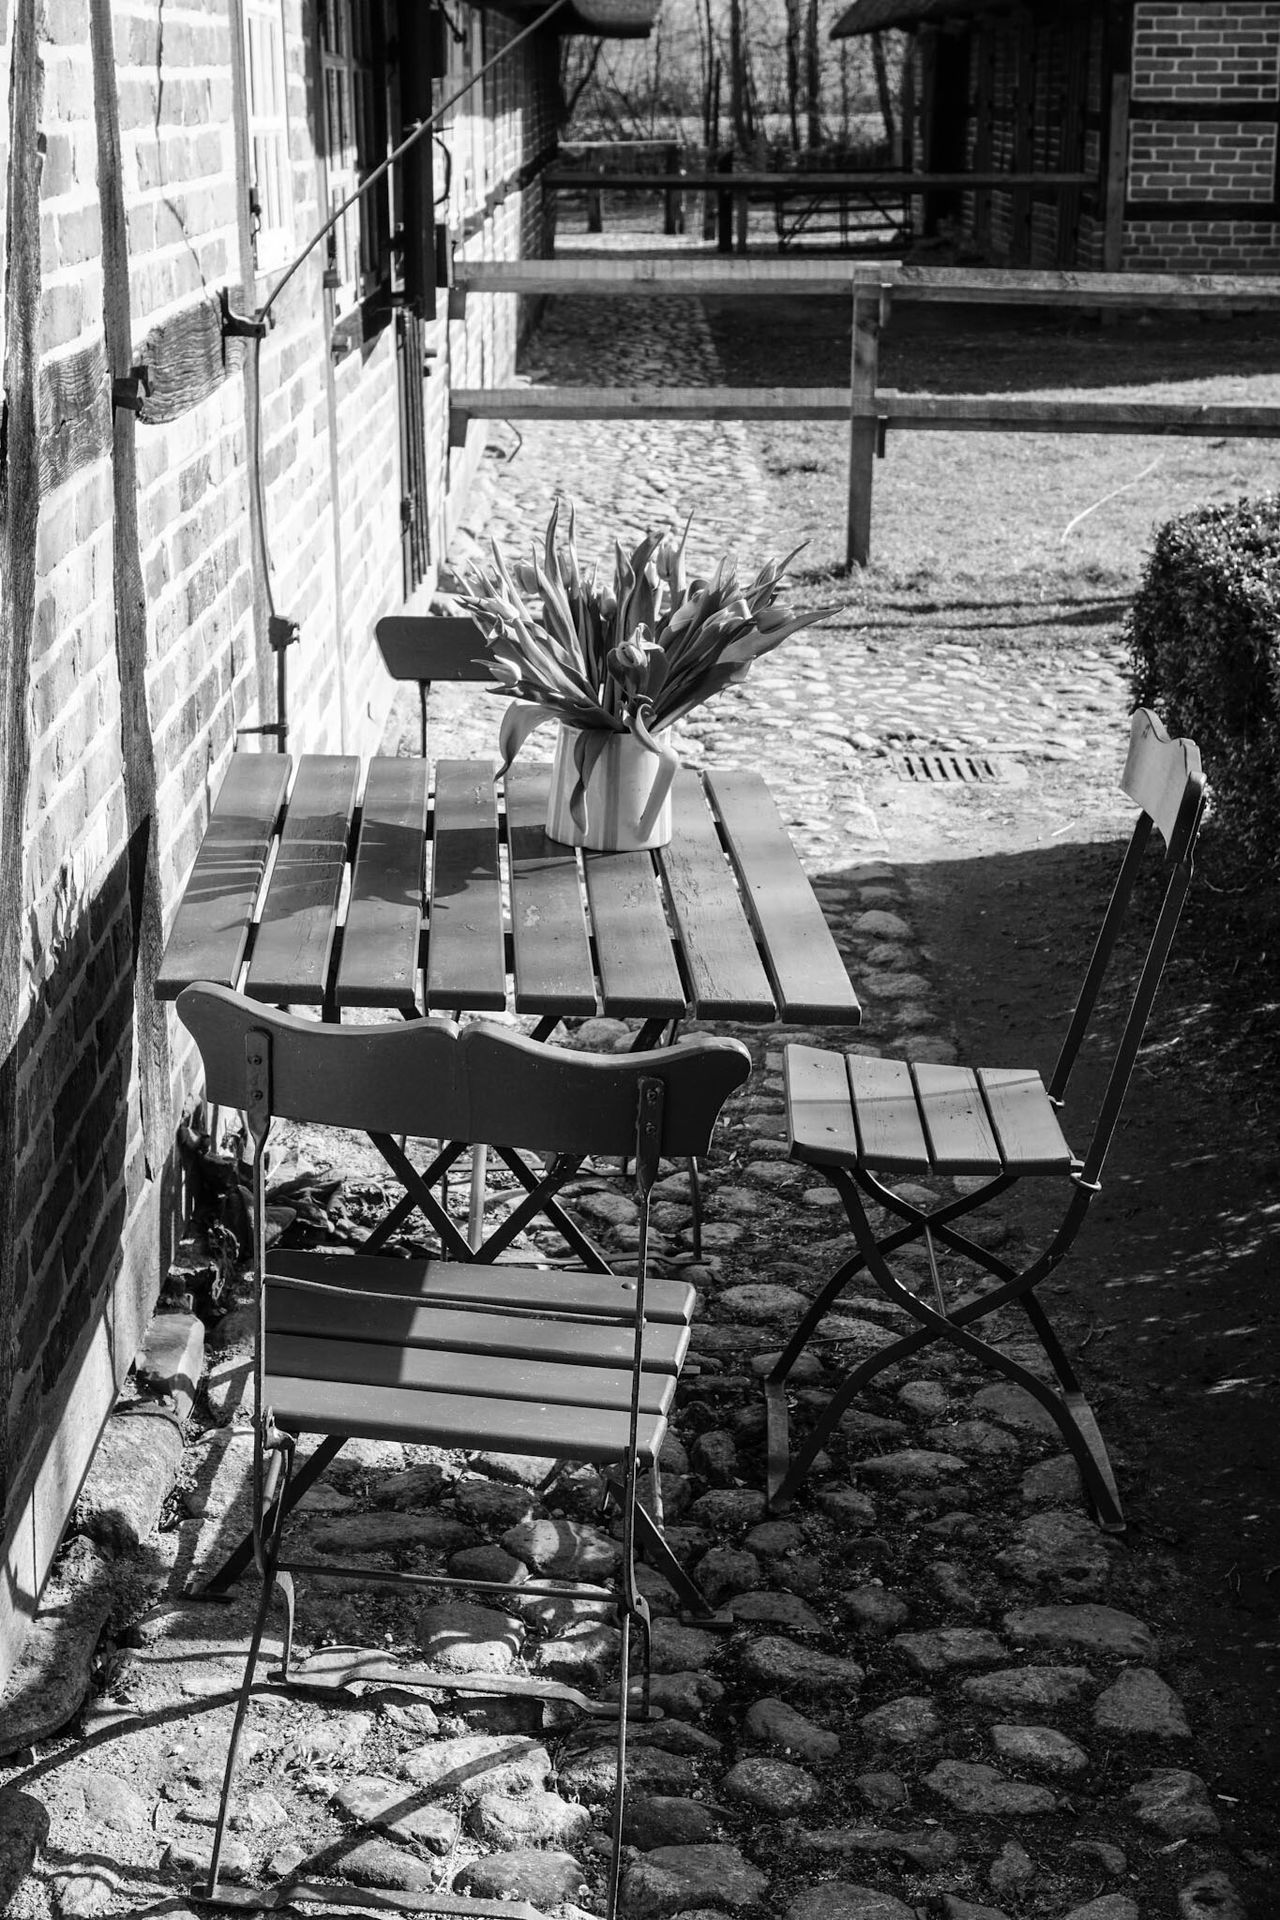 Still Life StillLifePhotography Black & White Black And White Blackandwhite Garden Chairs Table